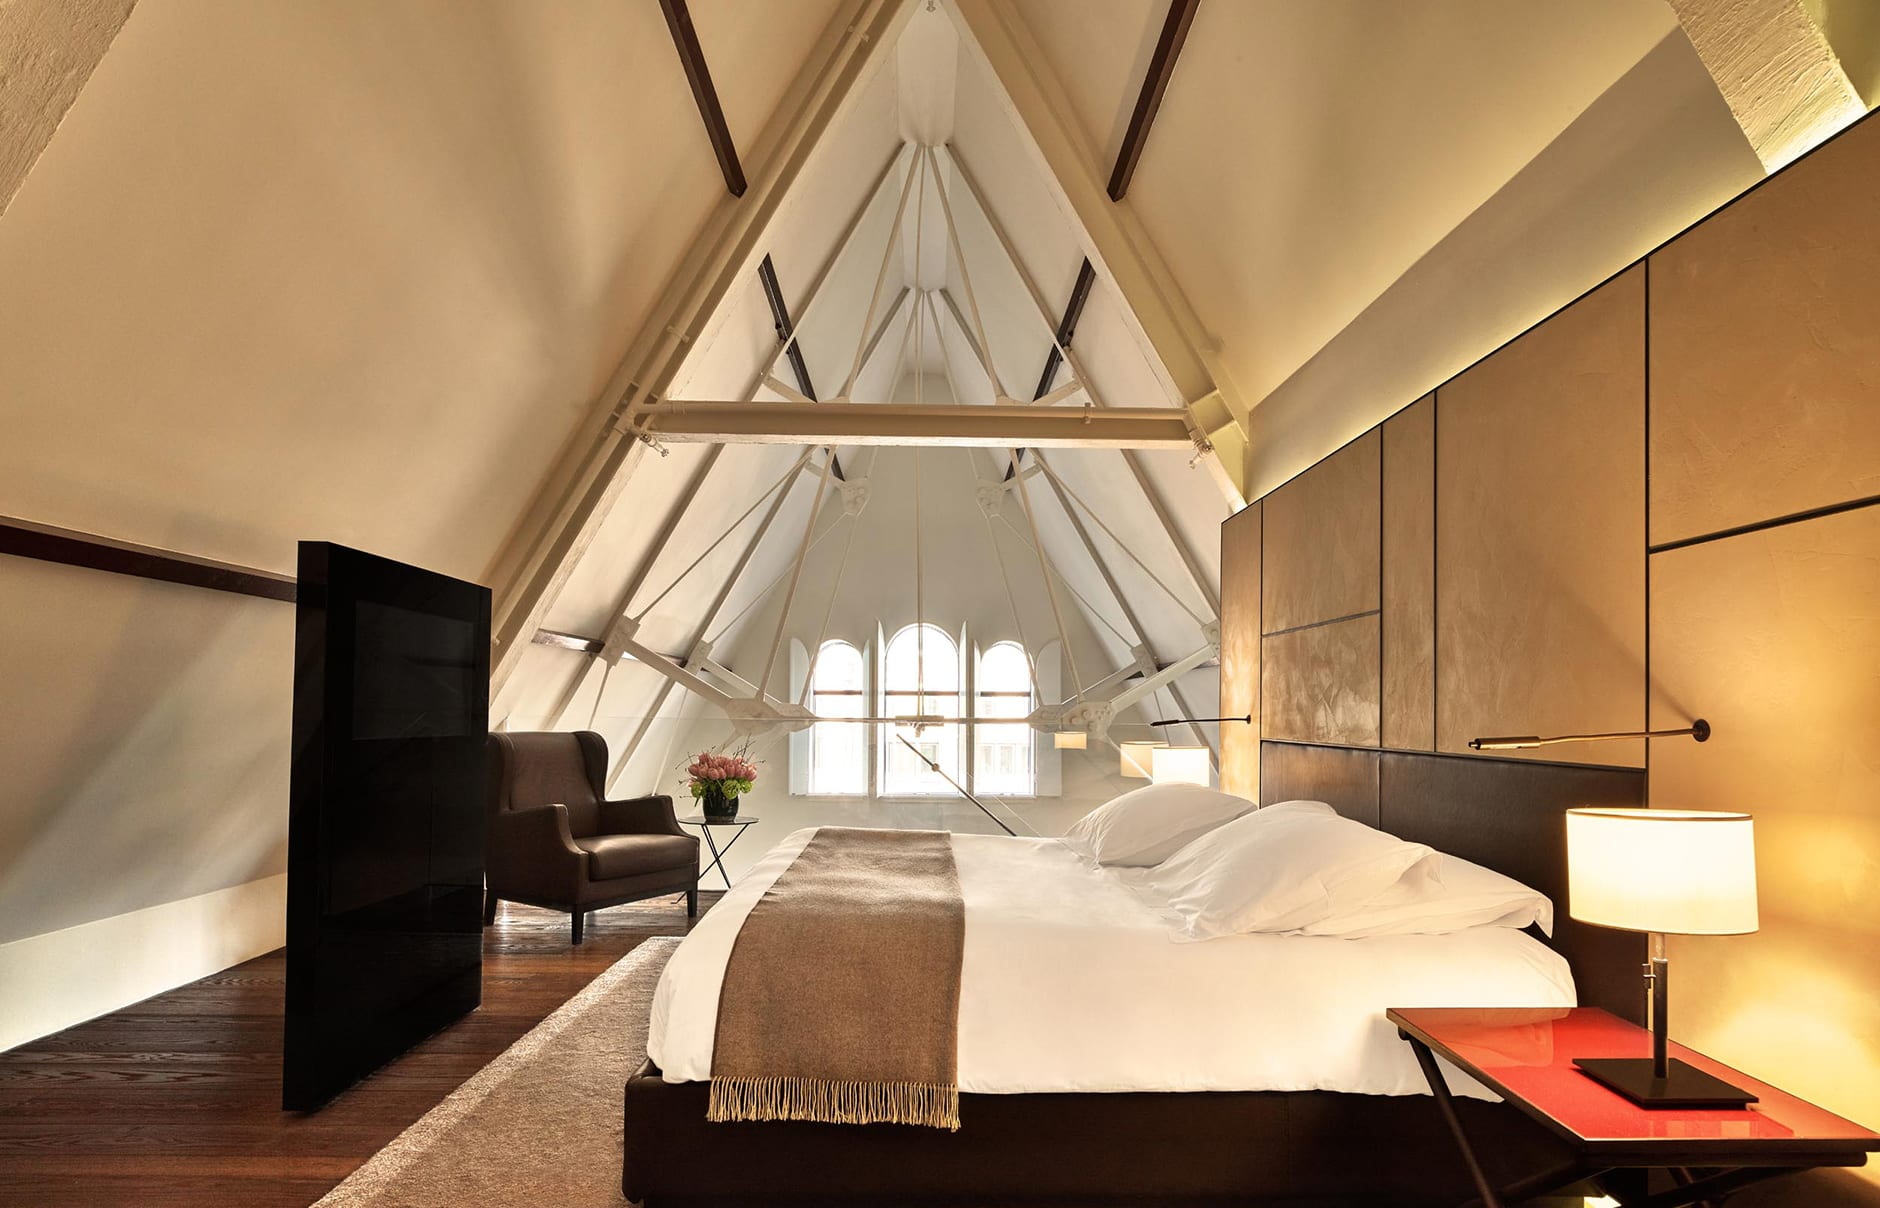 Conservatorium Hotel, Amsterdam. Hotel Review by TravelPlusStyle. Photo © Conservatorium Hotel